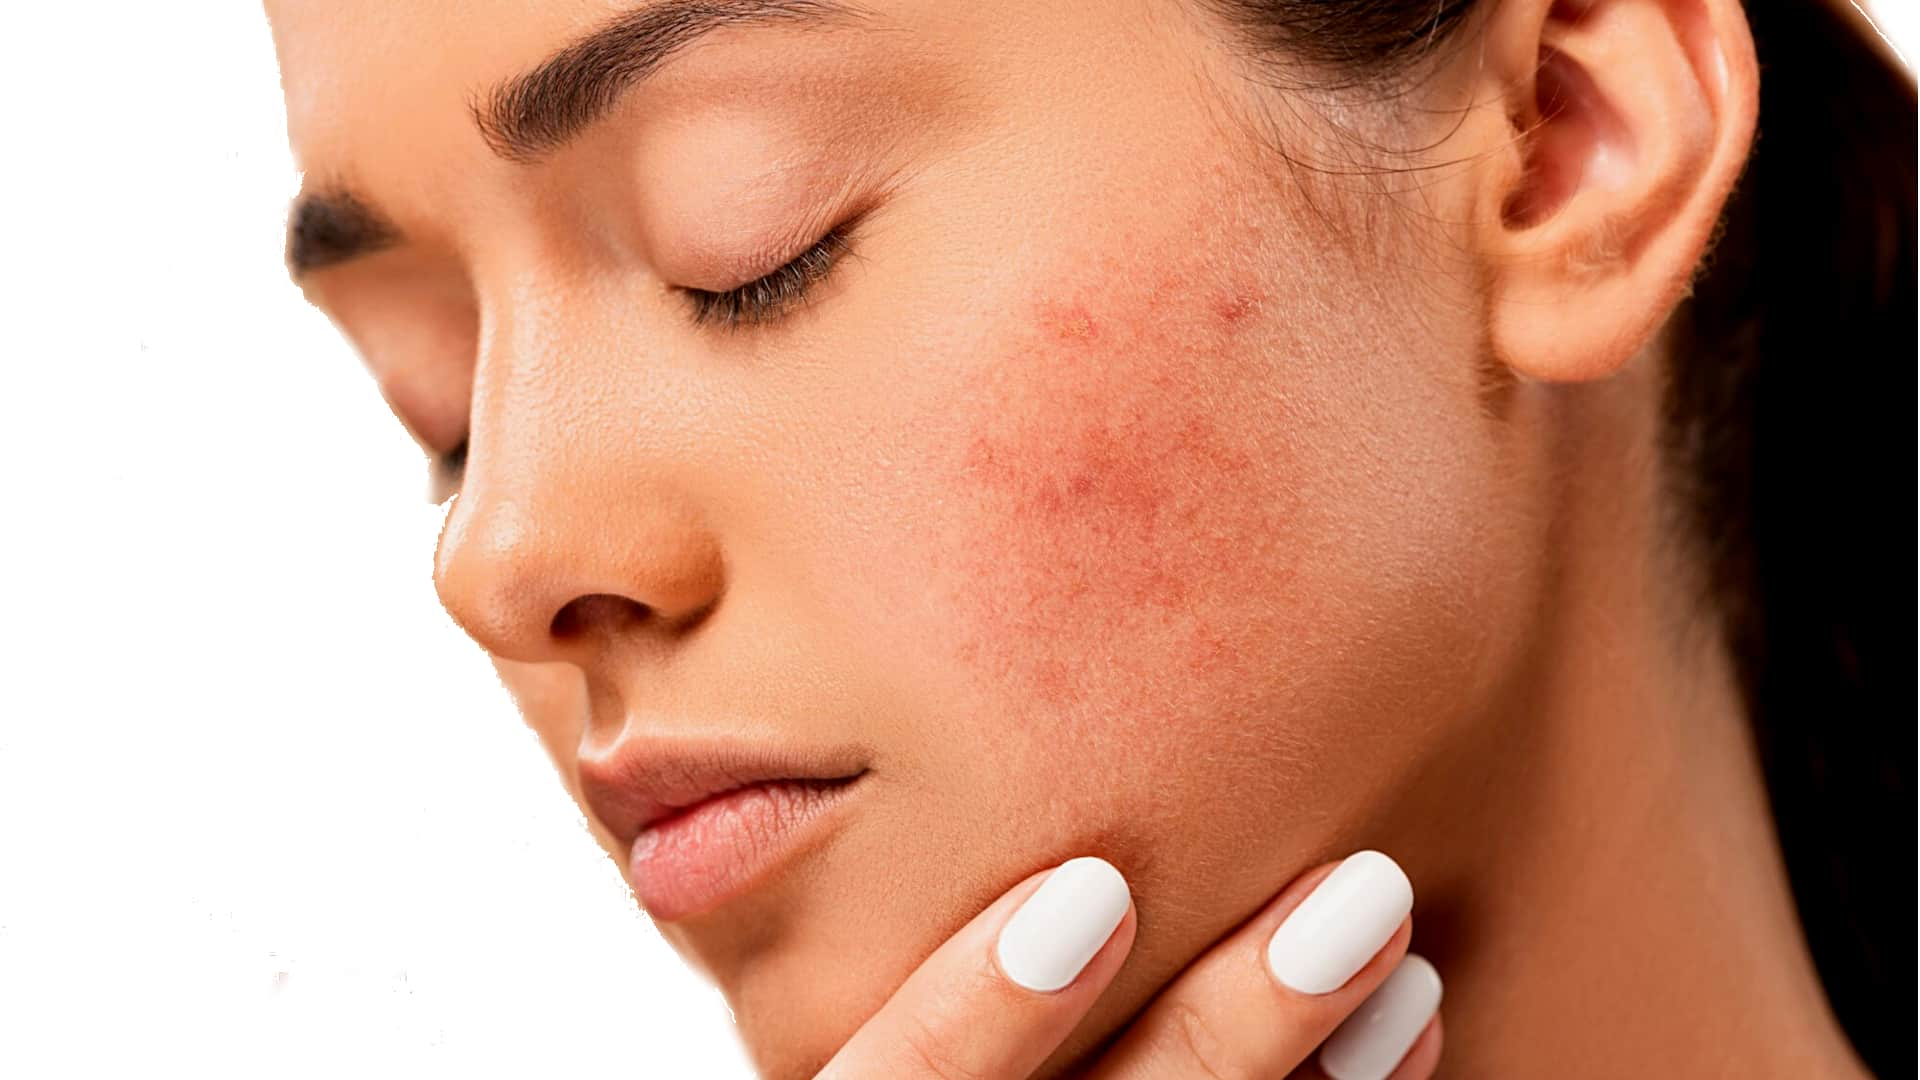 Oily Skin Care – How to Prevent Youthful Pimples